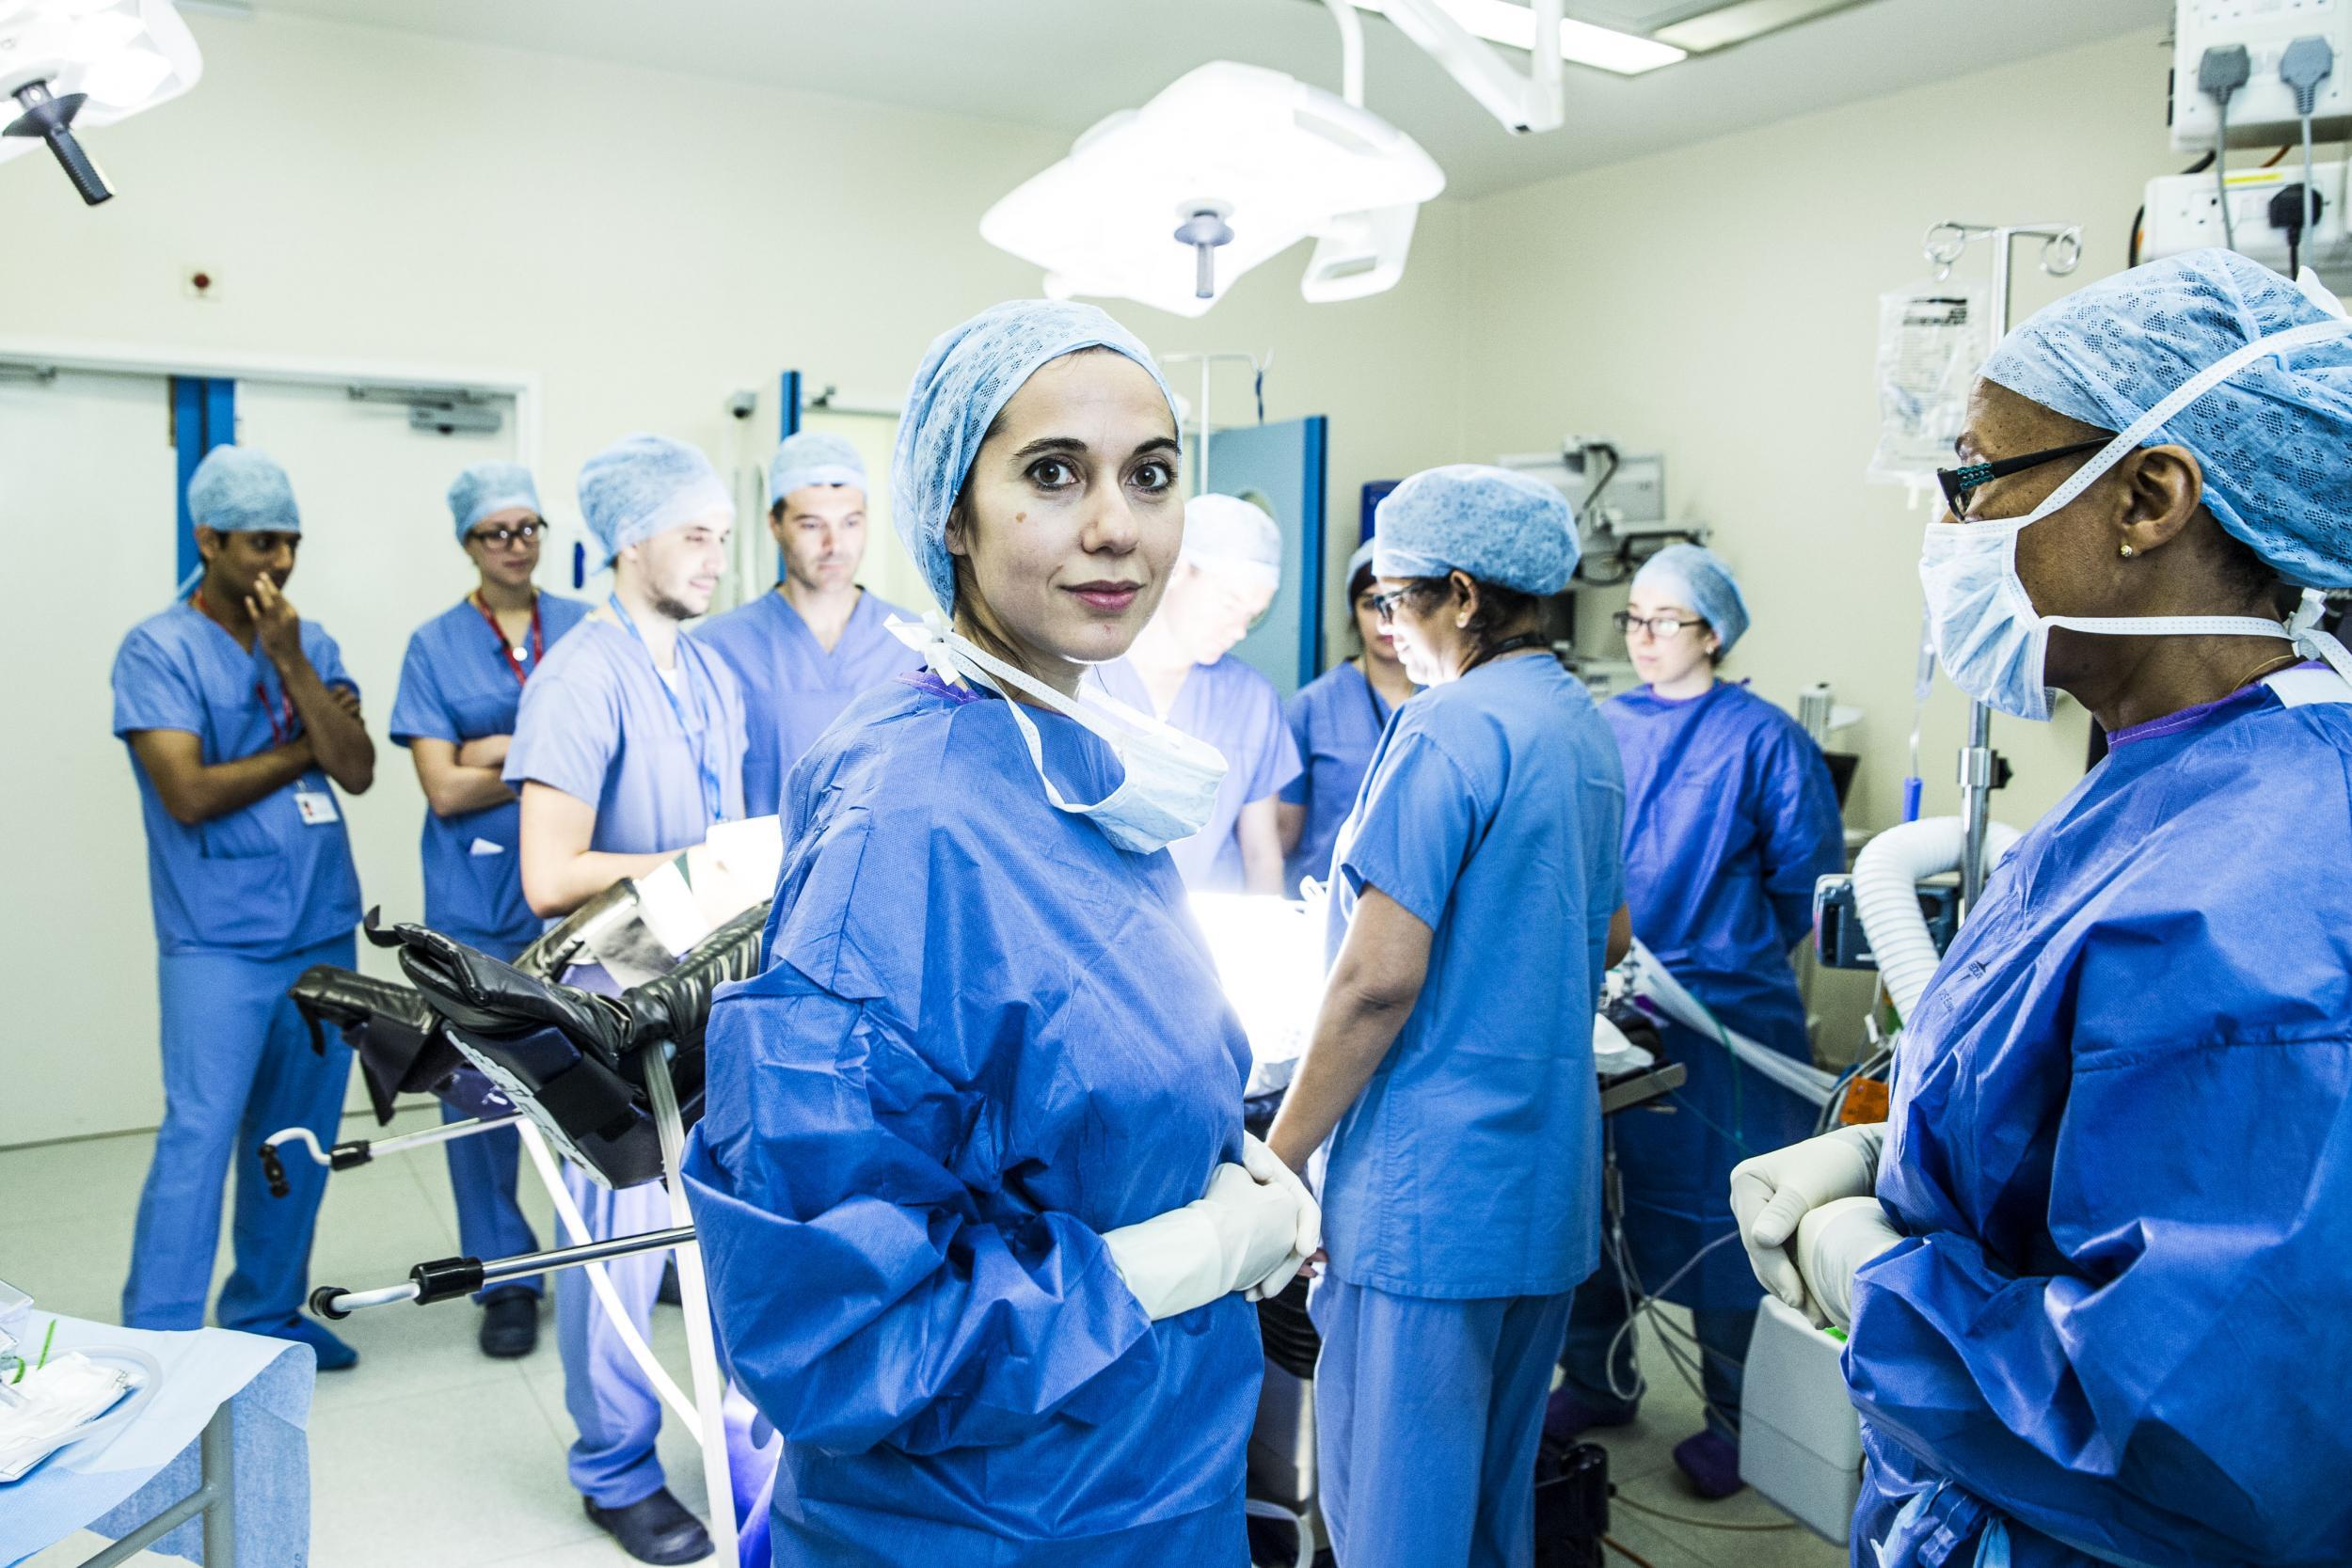 Last night's TV review, Hospital (BBC2): How medical professionals face what the terrorists ...